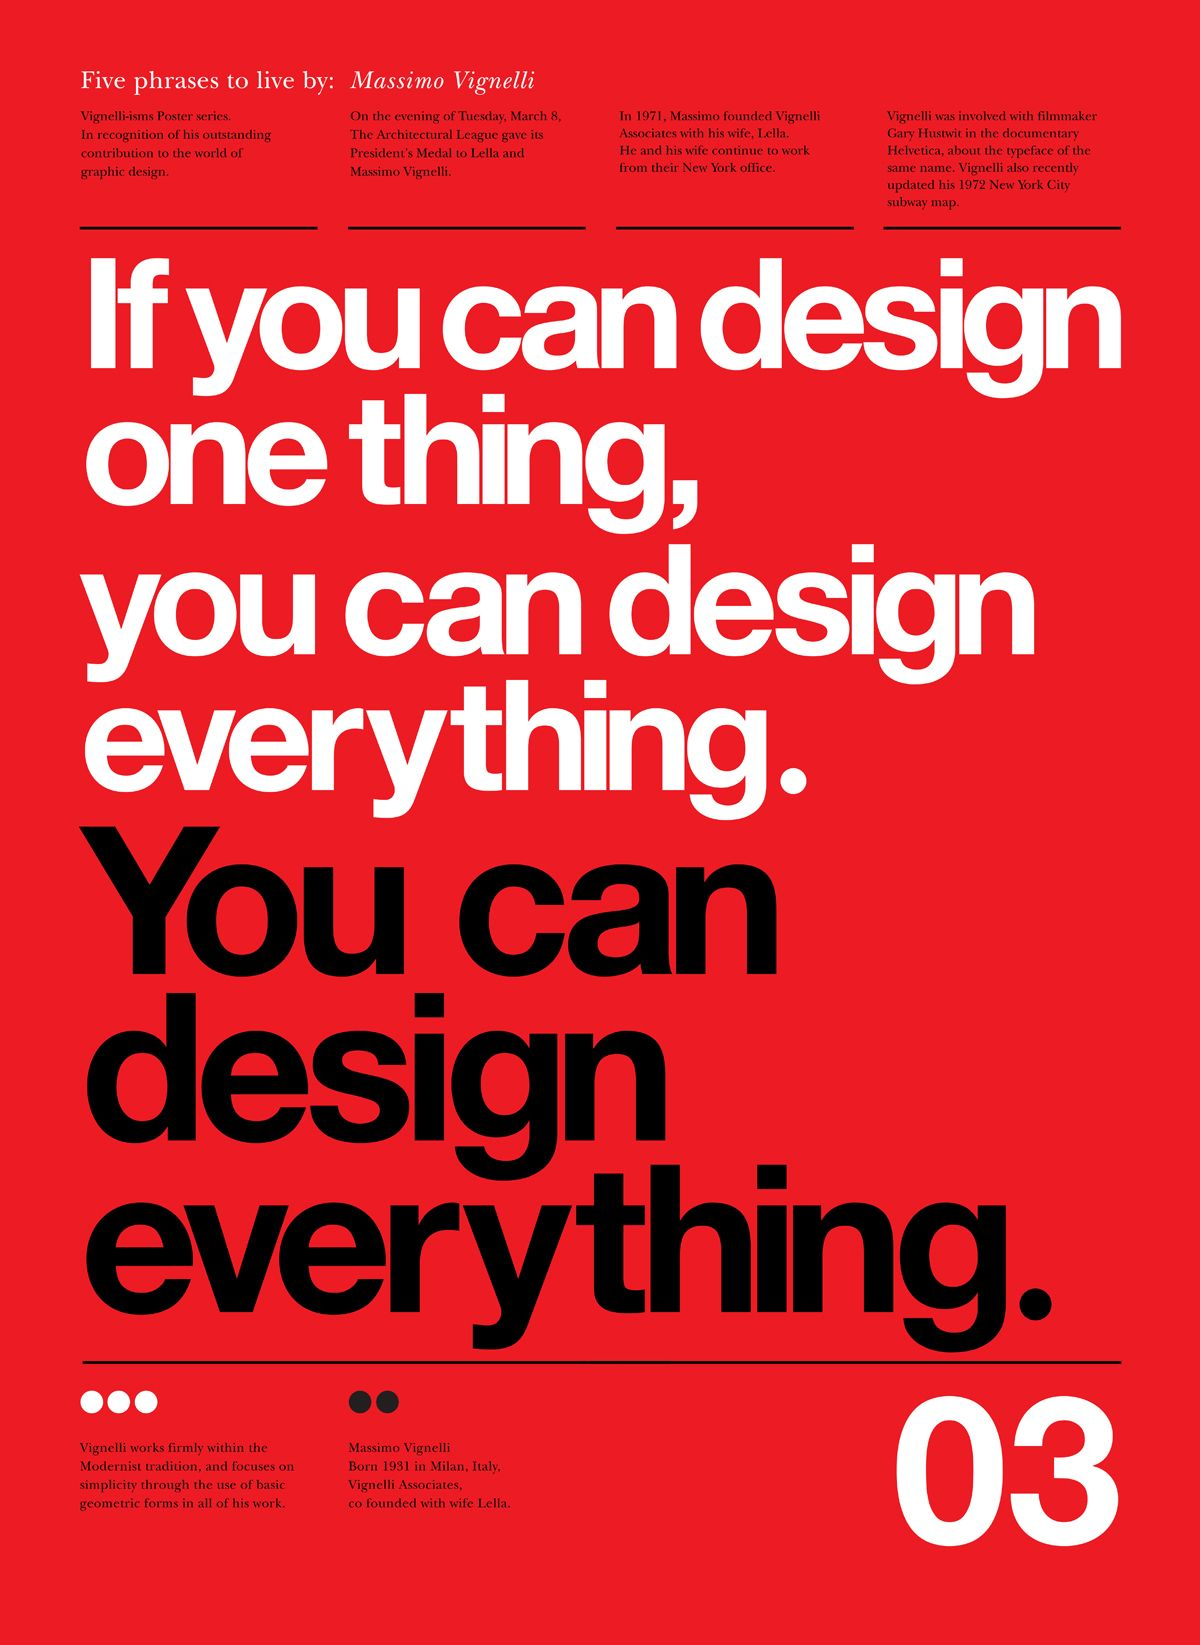 Notebook / Five Phrases to Live By: Massimo Vignelli